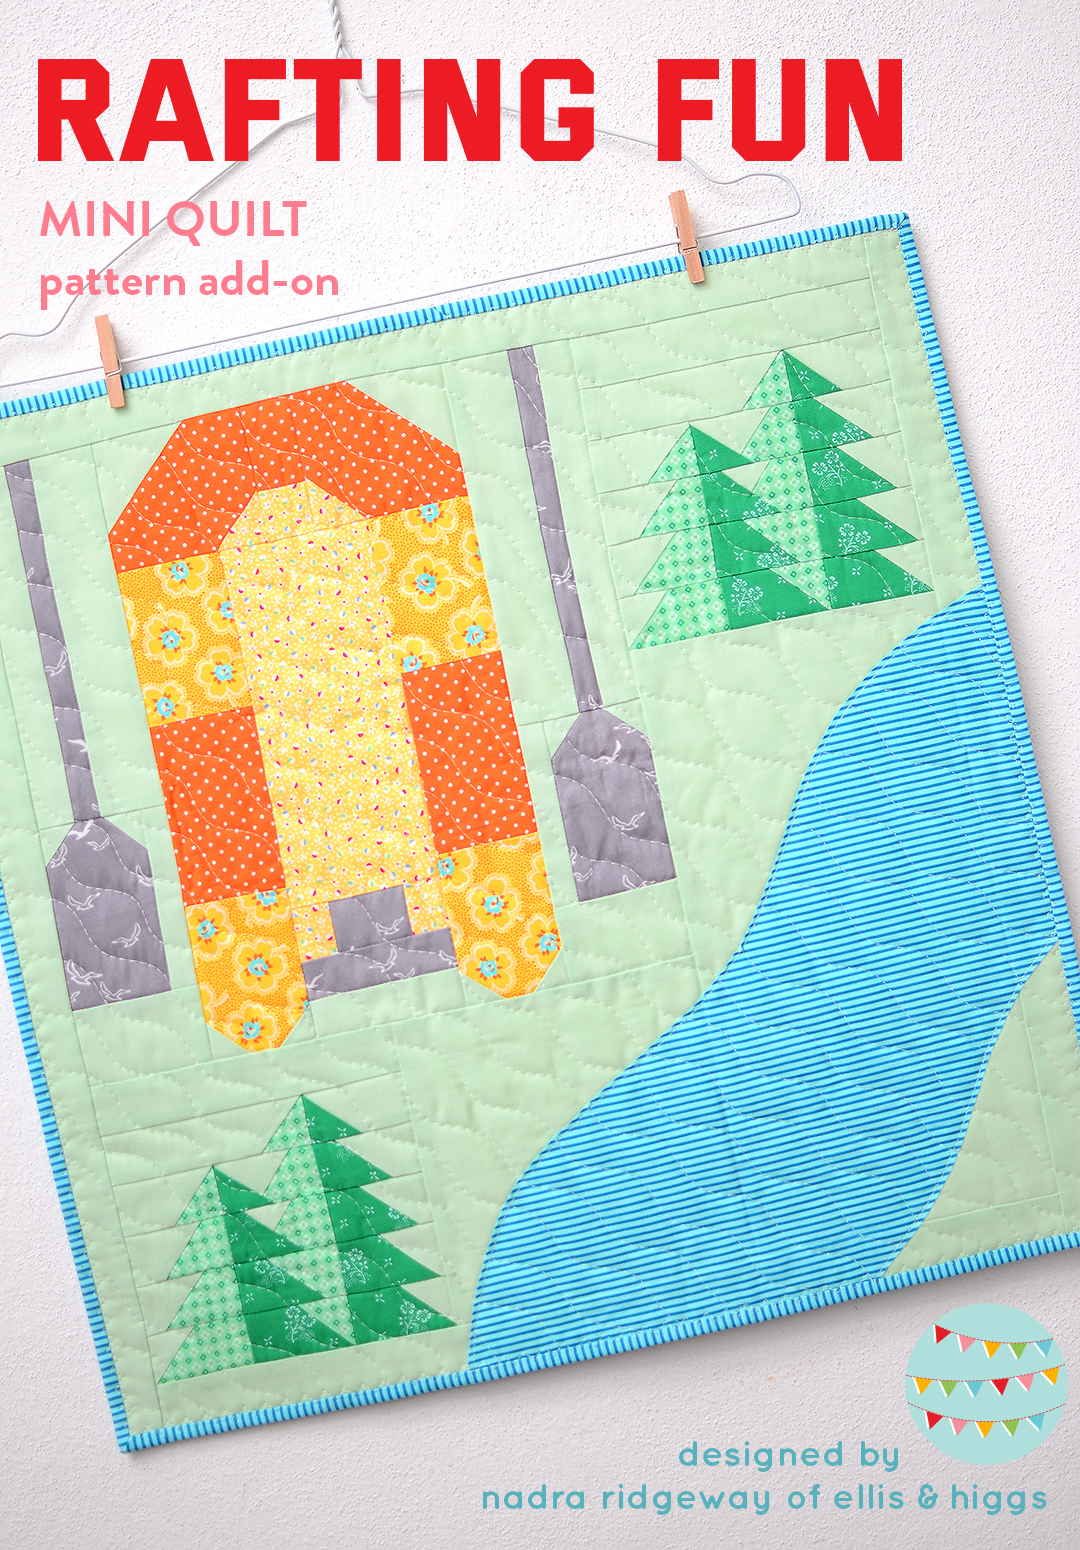 Rafting Boat mini quilt pattern - Camping quilt patterns